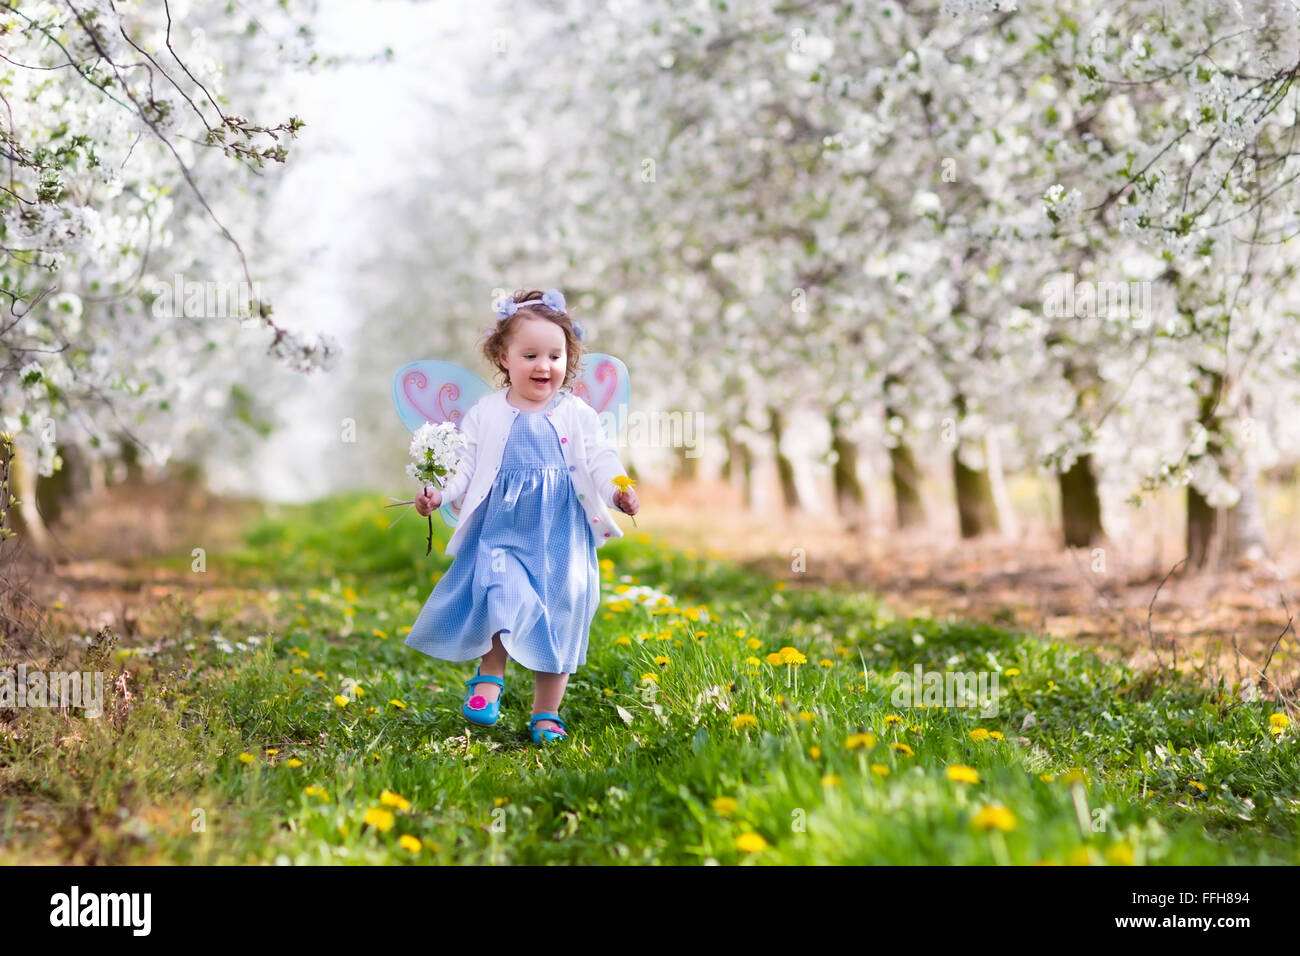 Little girl in fairy costume with wings flower crown and magic wand little girl in fairy costume with wings flower crown and magic wand playing in blooming apple tree garden on easter egg hunt izmirmasajfo Gallery